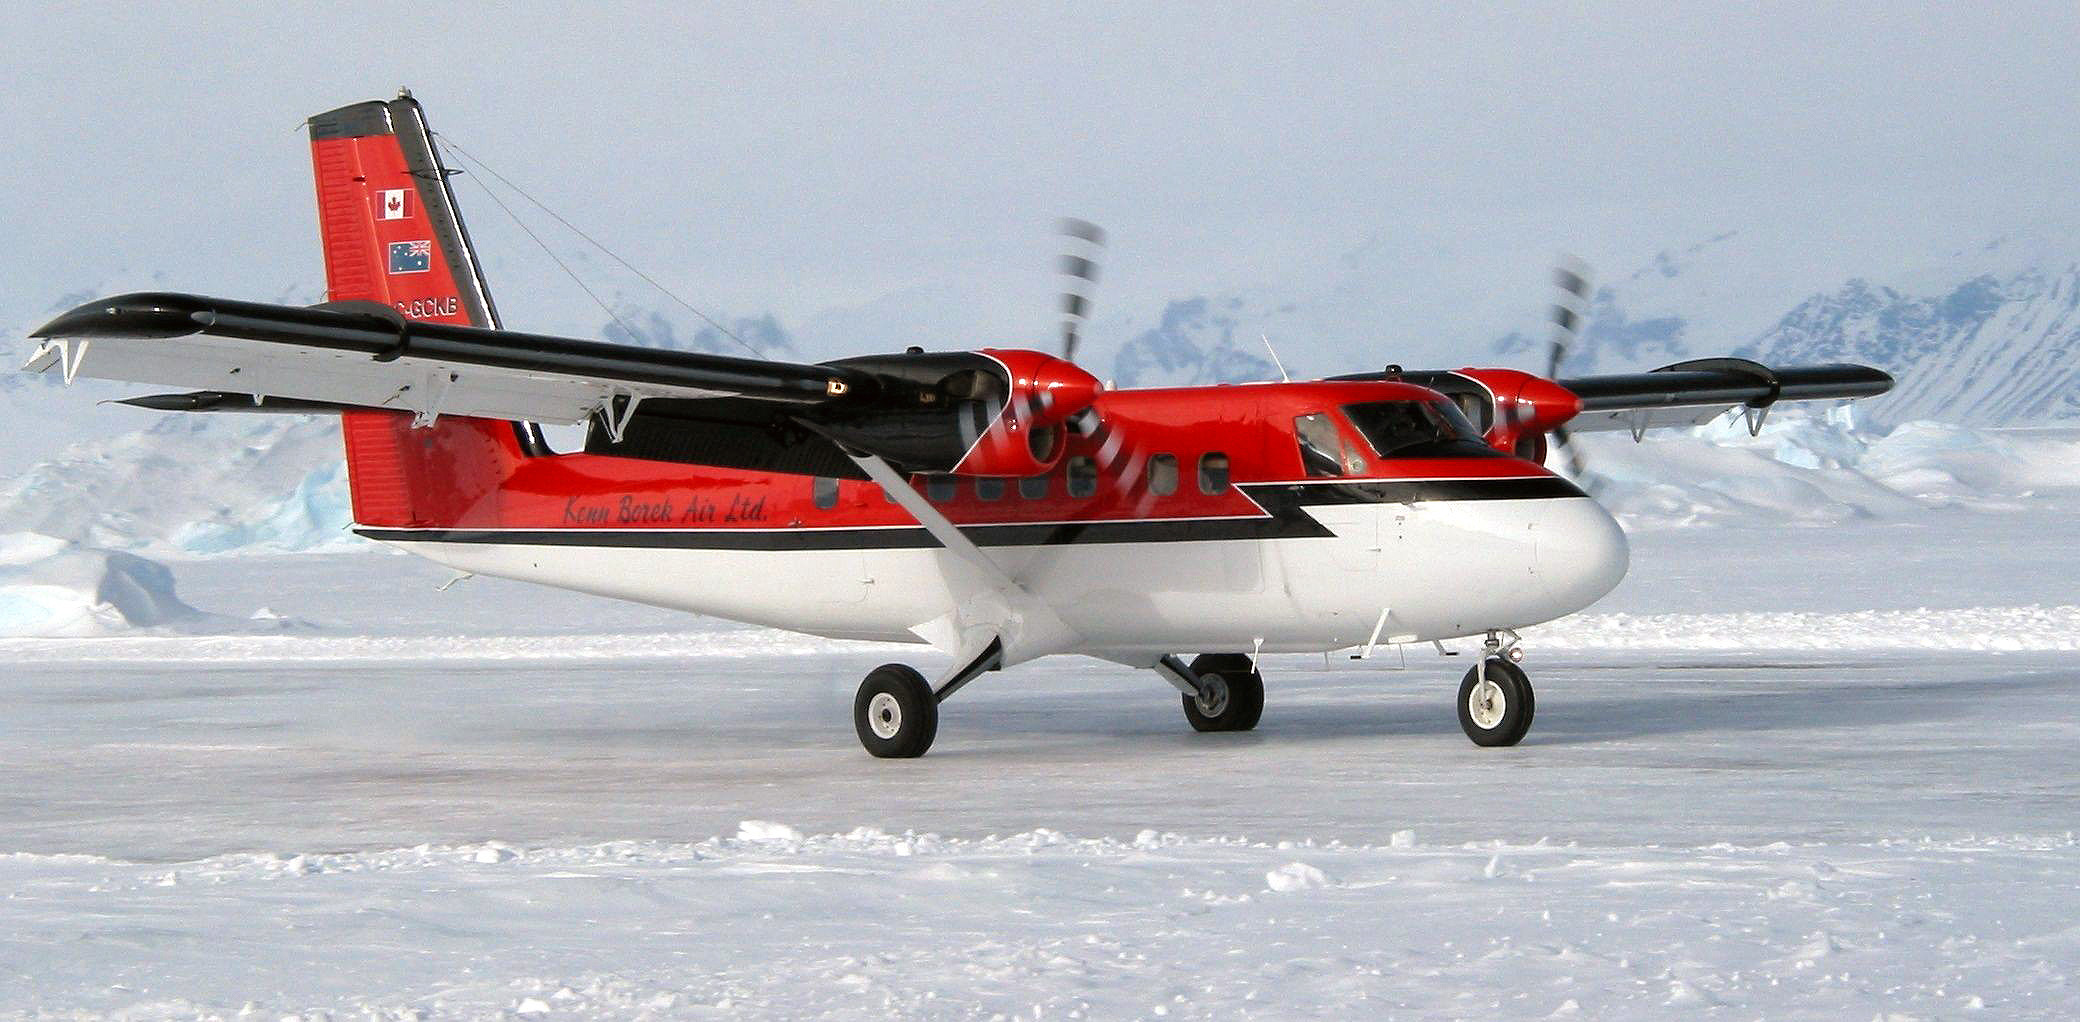 Twin Otter Lost in Antarctica; 3 Missing